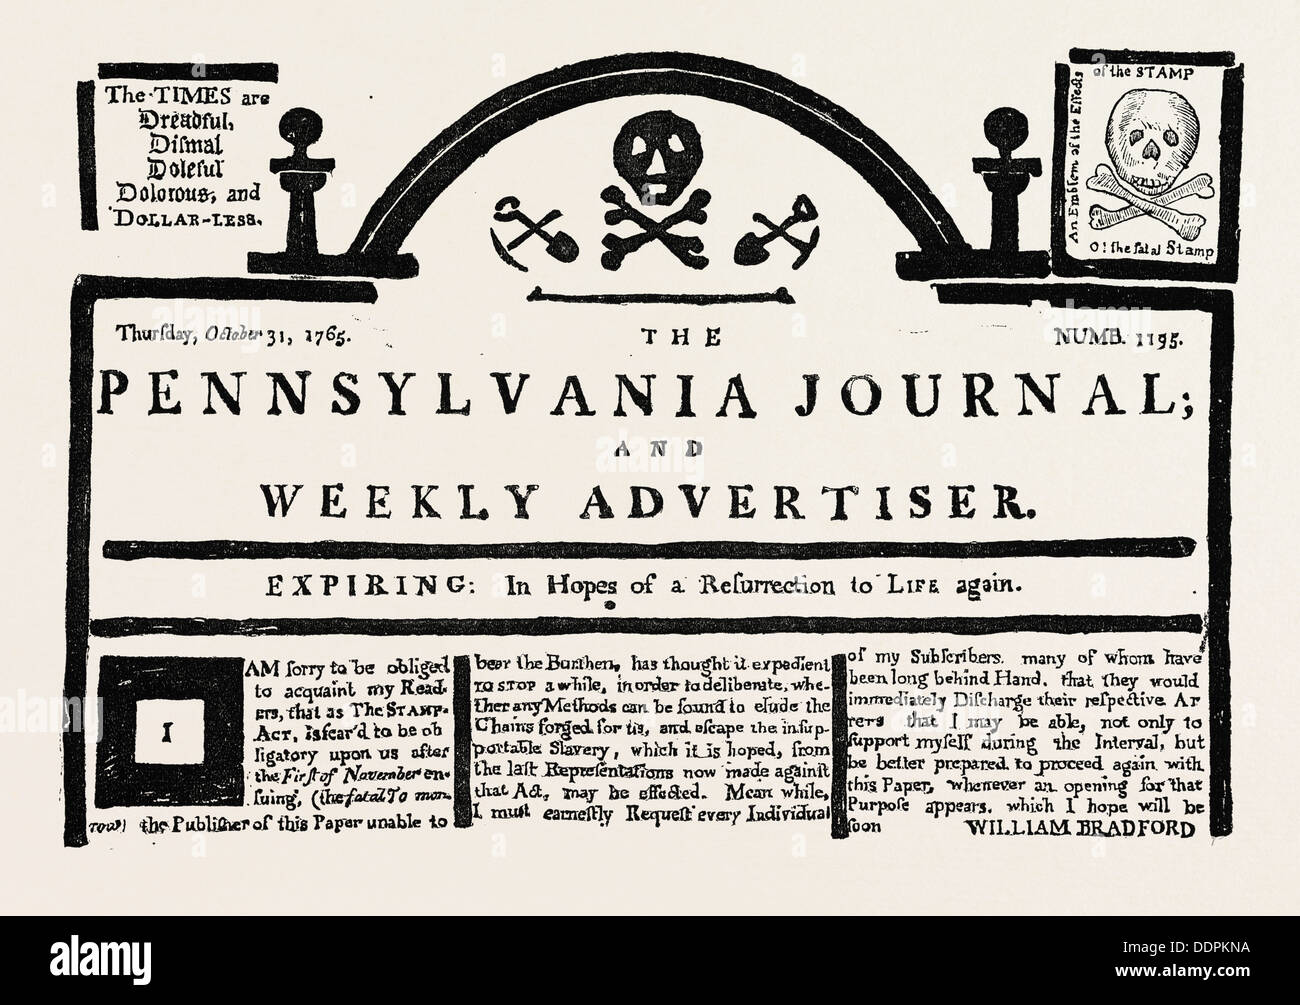 FACSIMILE OF THE  PENNSYLVANIA JOURNAL  ON THE STAMP ACT. American Historical and Literary Curiosities, US, USA, 1870s engraving - Stock Image